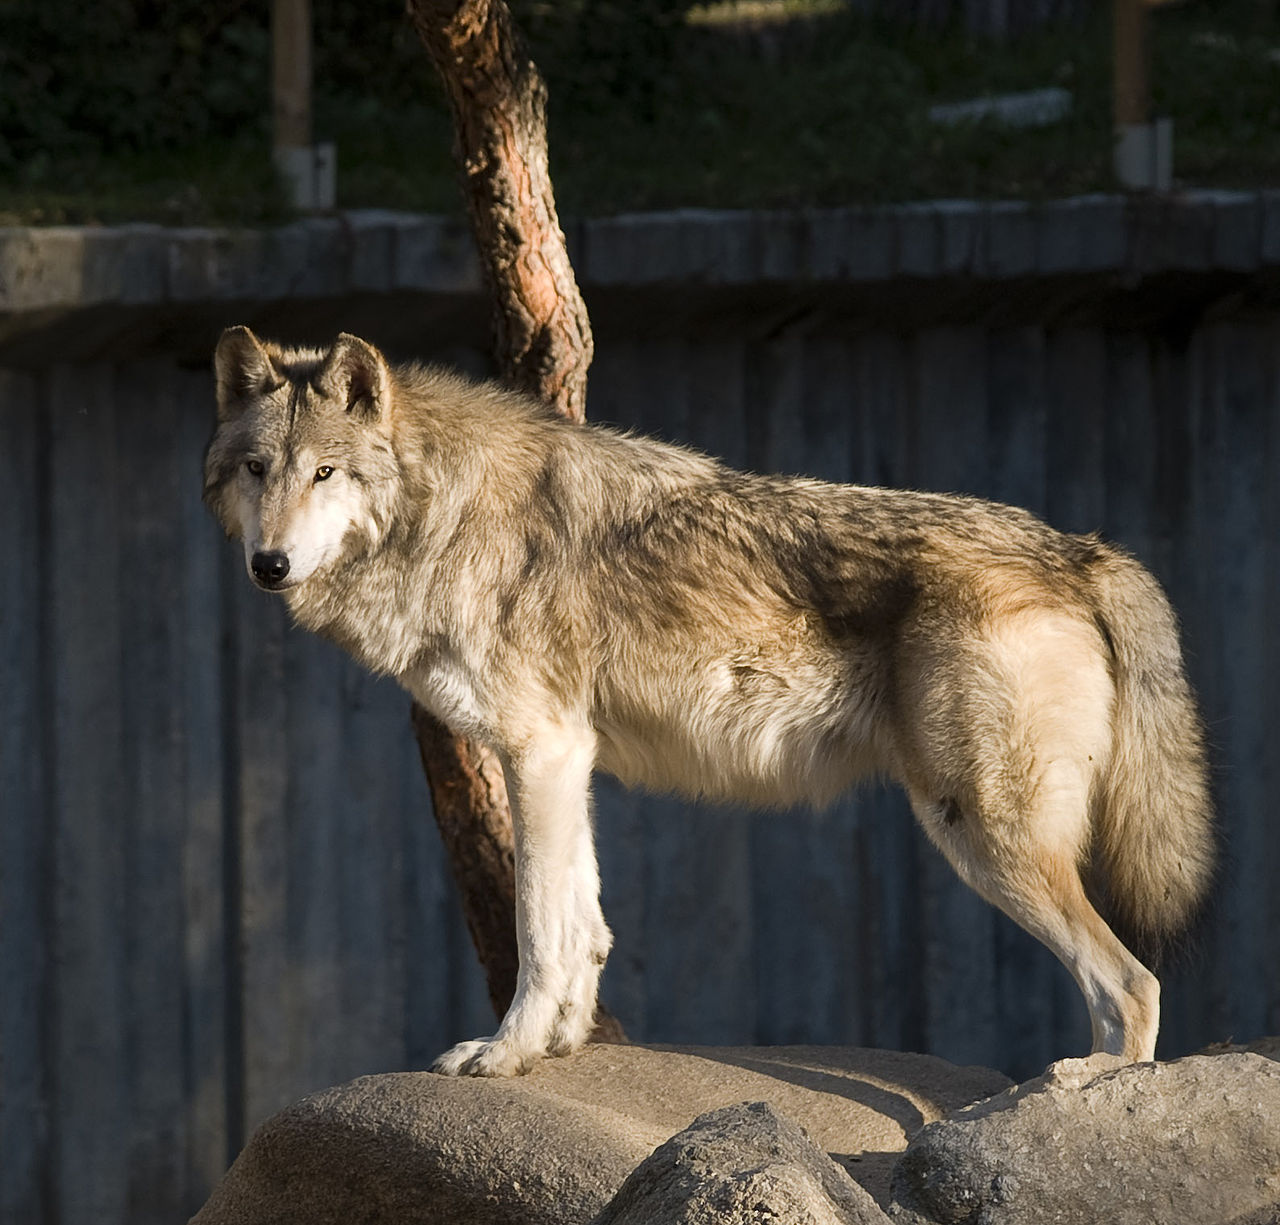 1280px-lobo_en_el_zoo_de_madrid_01_cropped